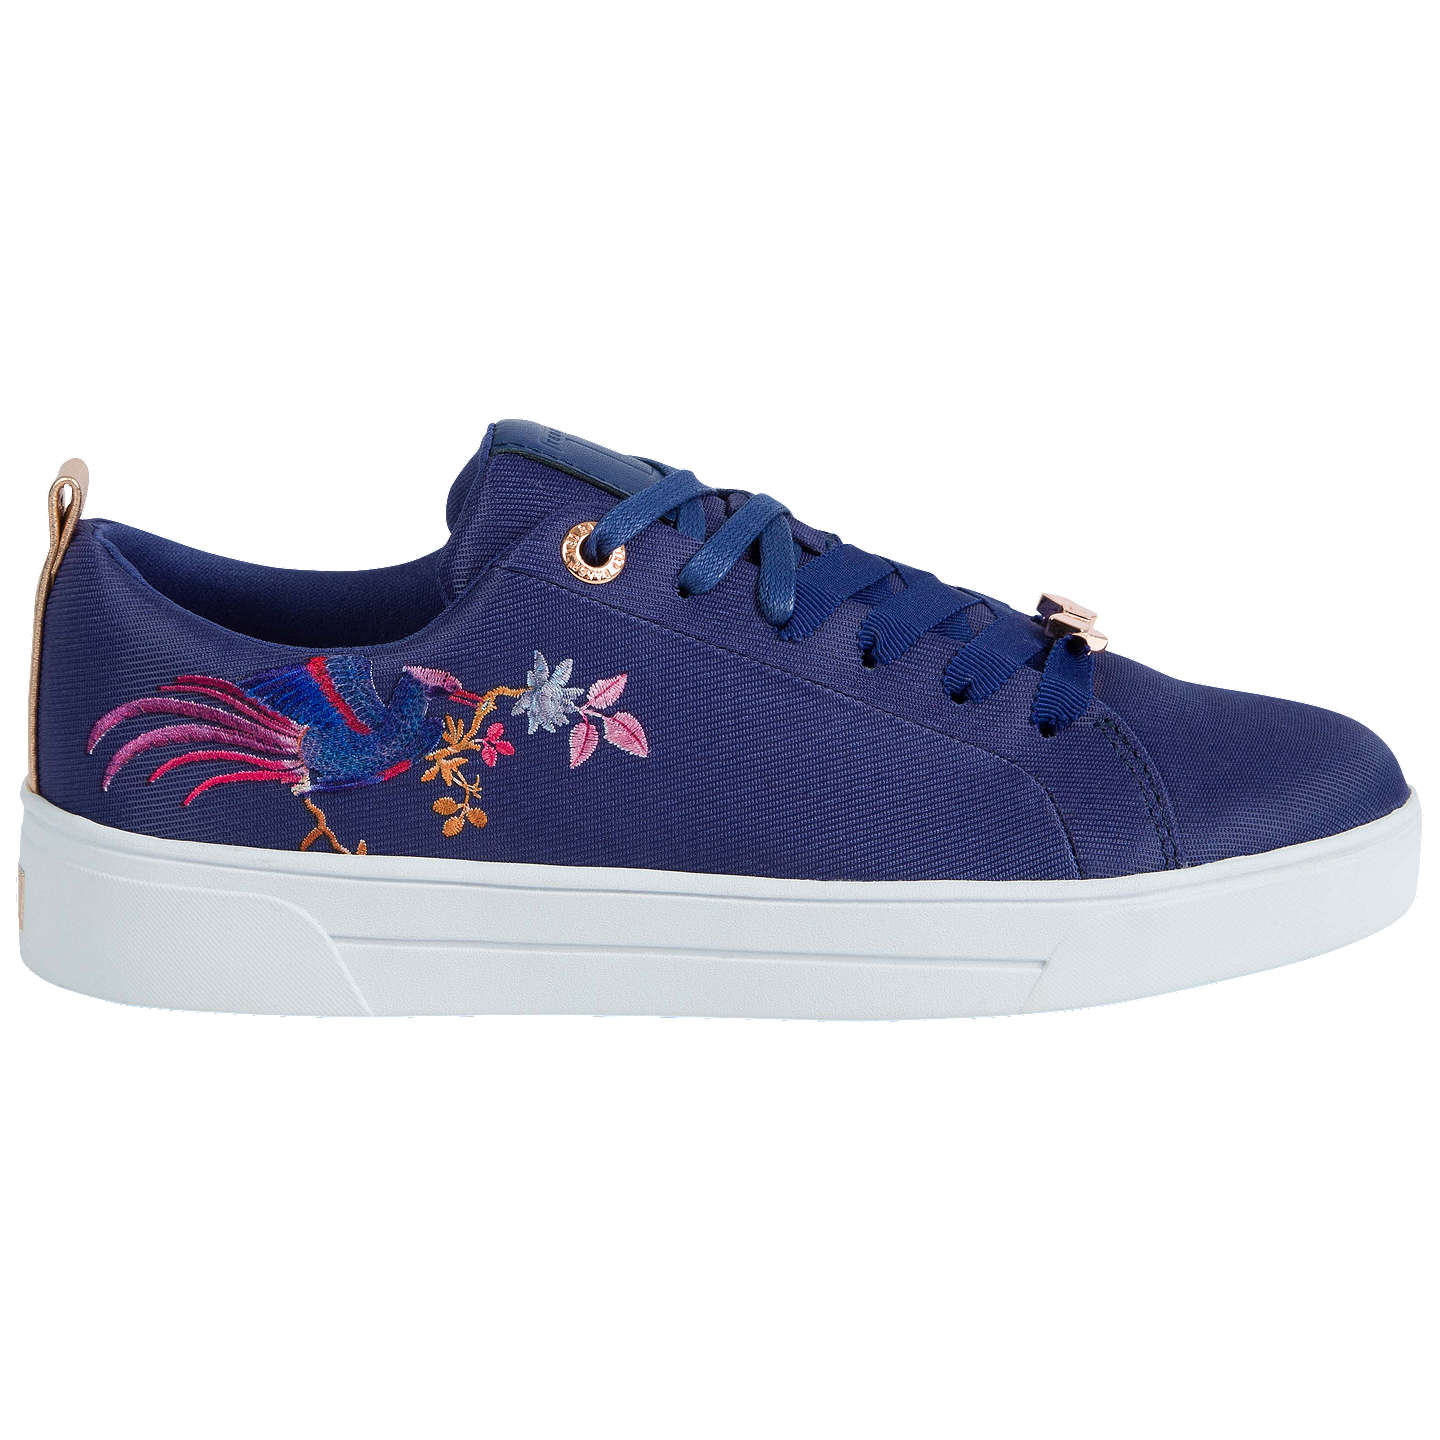 GIELLIE - Trainers - navy